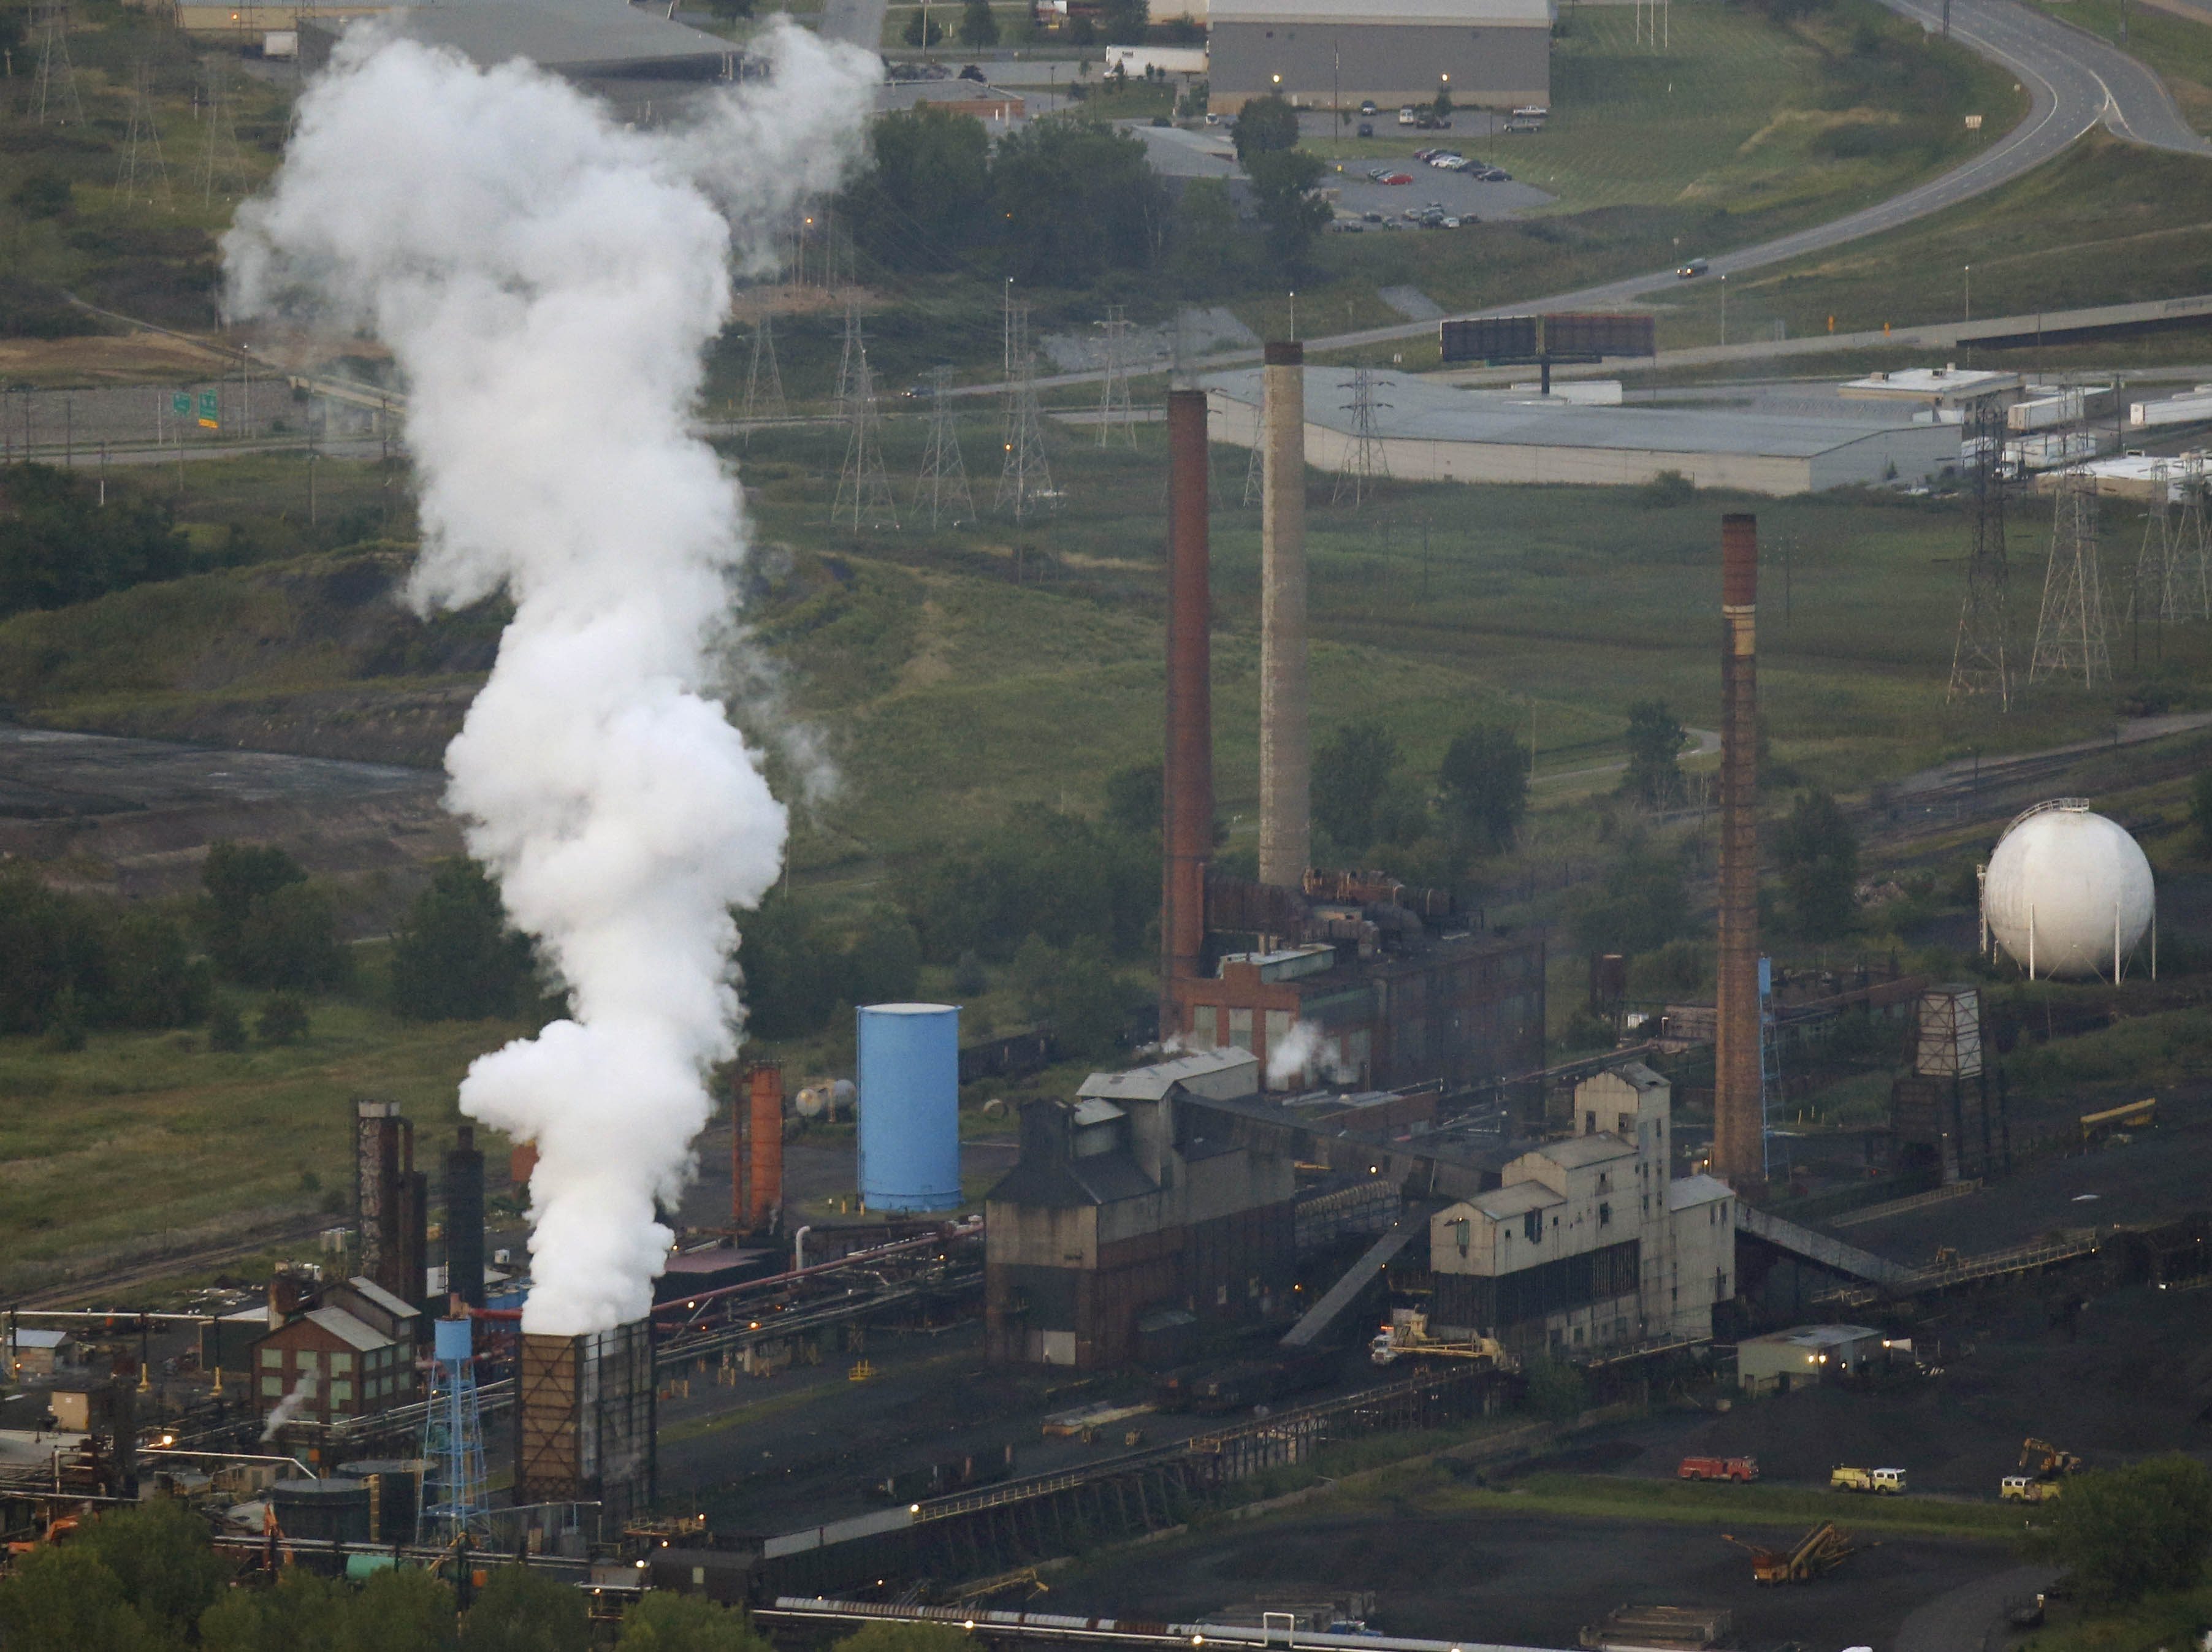 Tonawanda Coke will pay $2.75 million in civil penalties millions more to reduce pollution and an agreement that benefits Tonawanda and sends a clear message to other polluters.